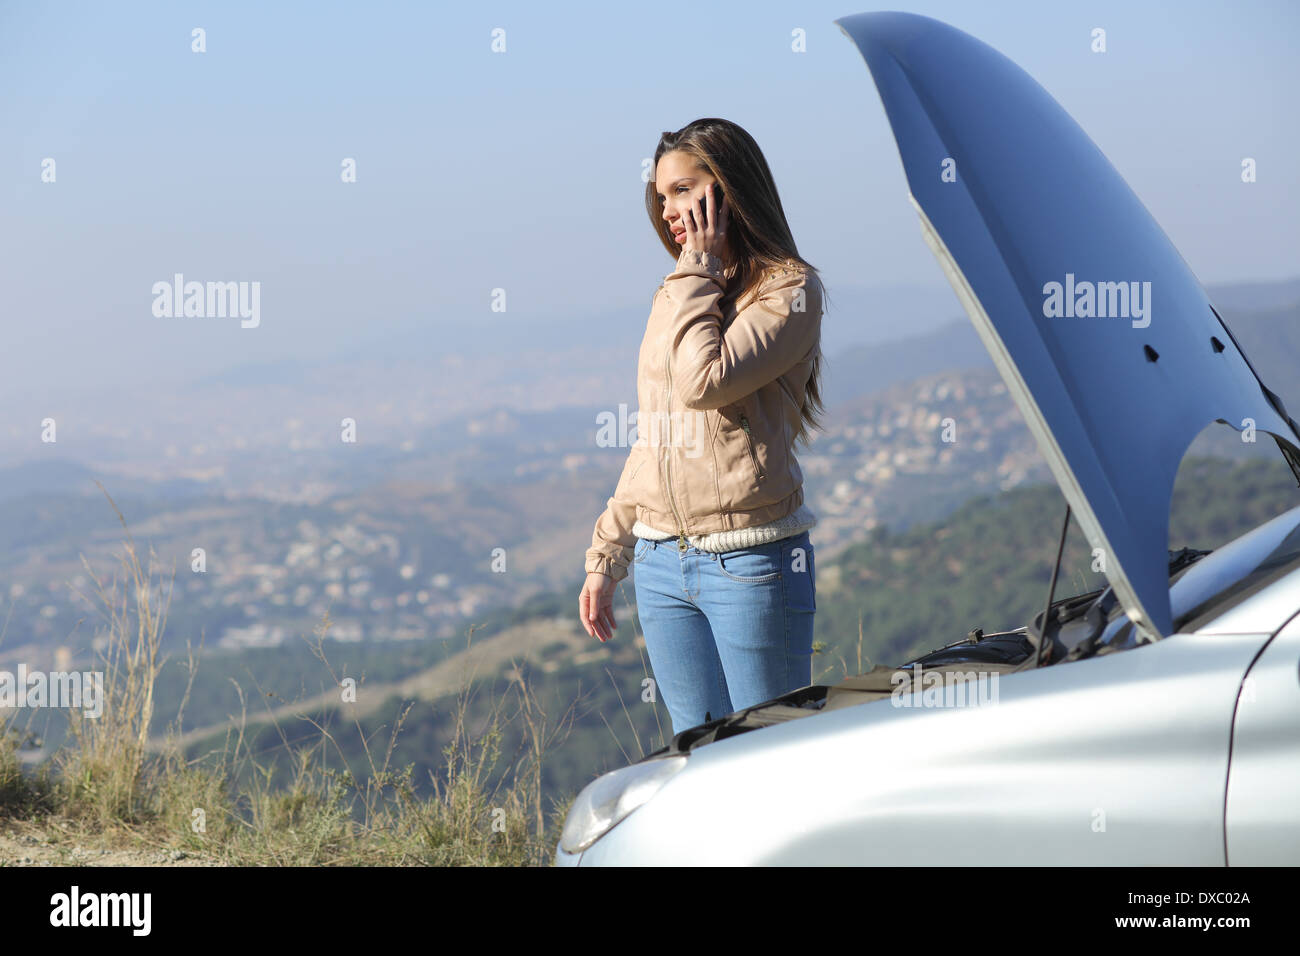 Woman on the phone asking for help beside her crash breakdown car in a road with a city in the background - Stock Image